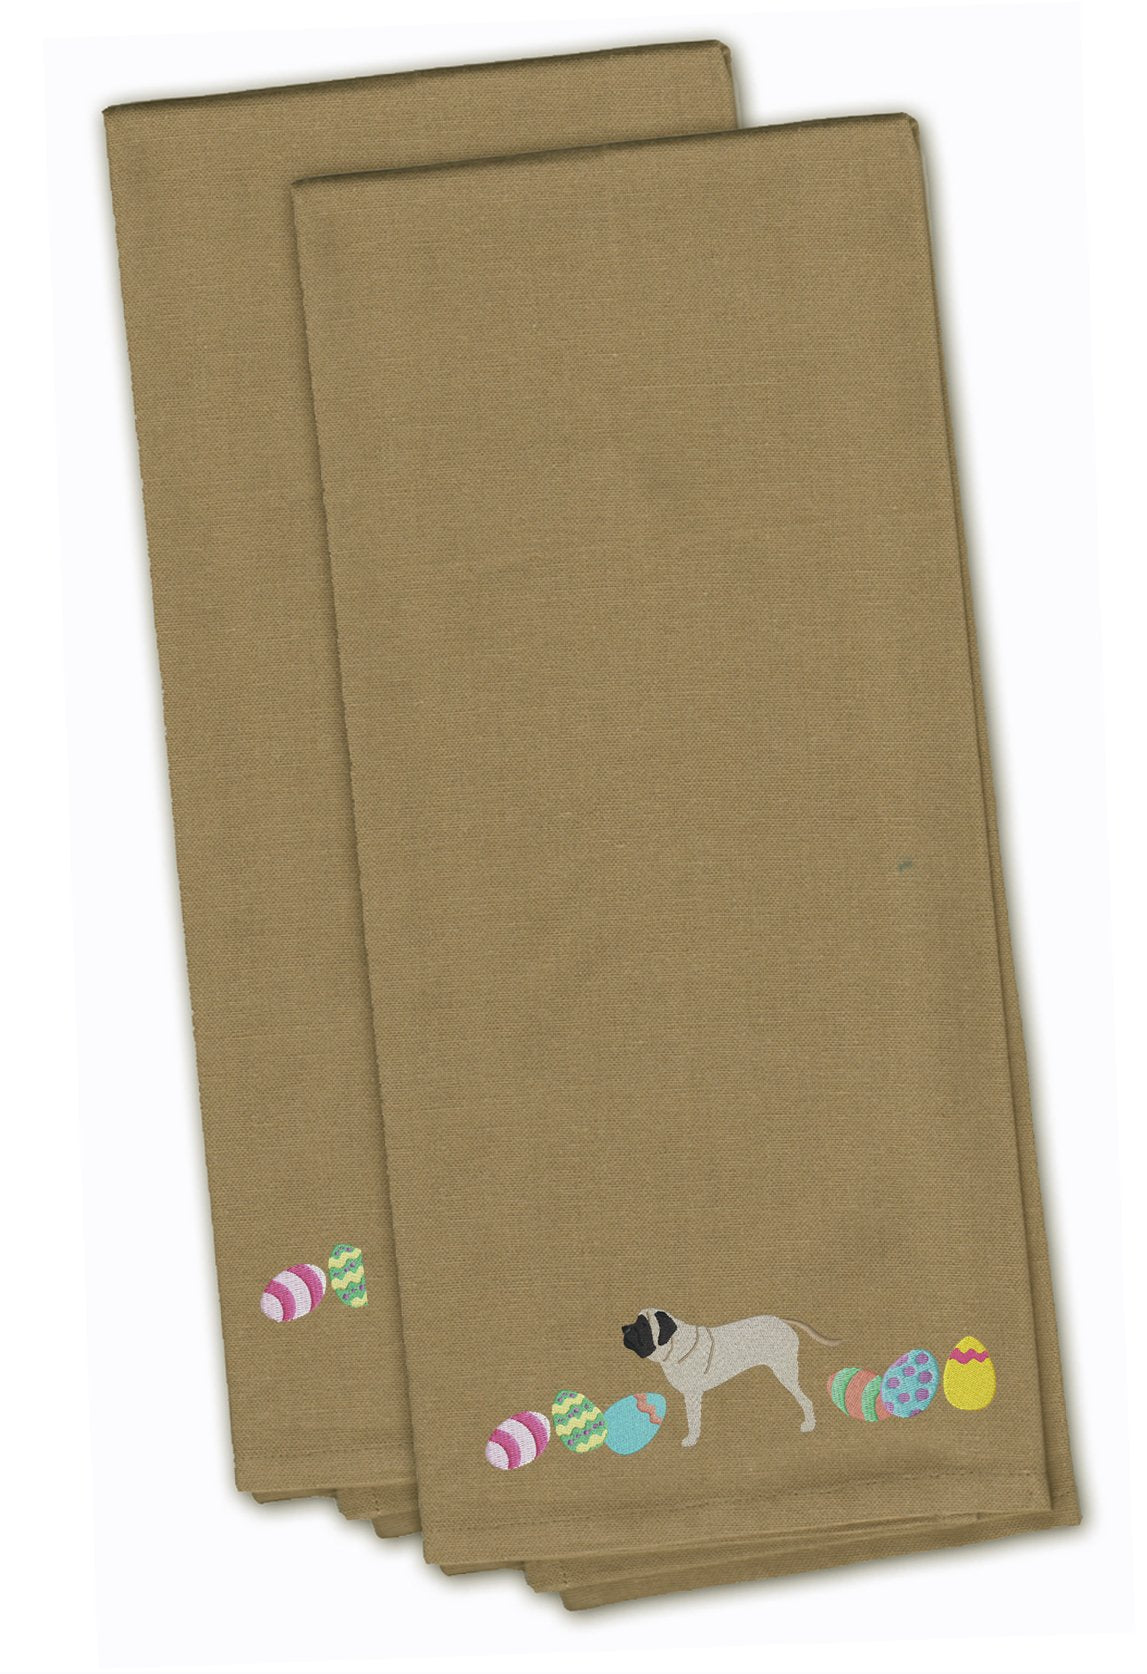 English Mastiff Easter Tan Embroidered Kitchen Towel Set of 2 CK1638TNTWE by Caroline's Treasures